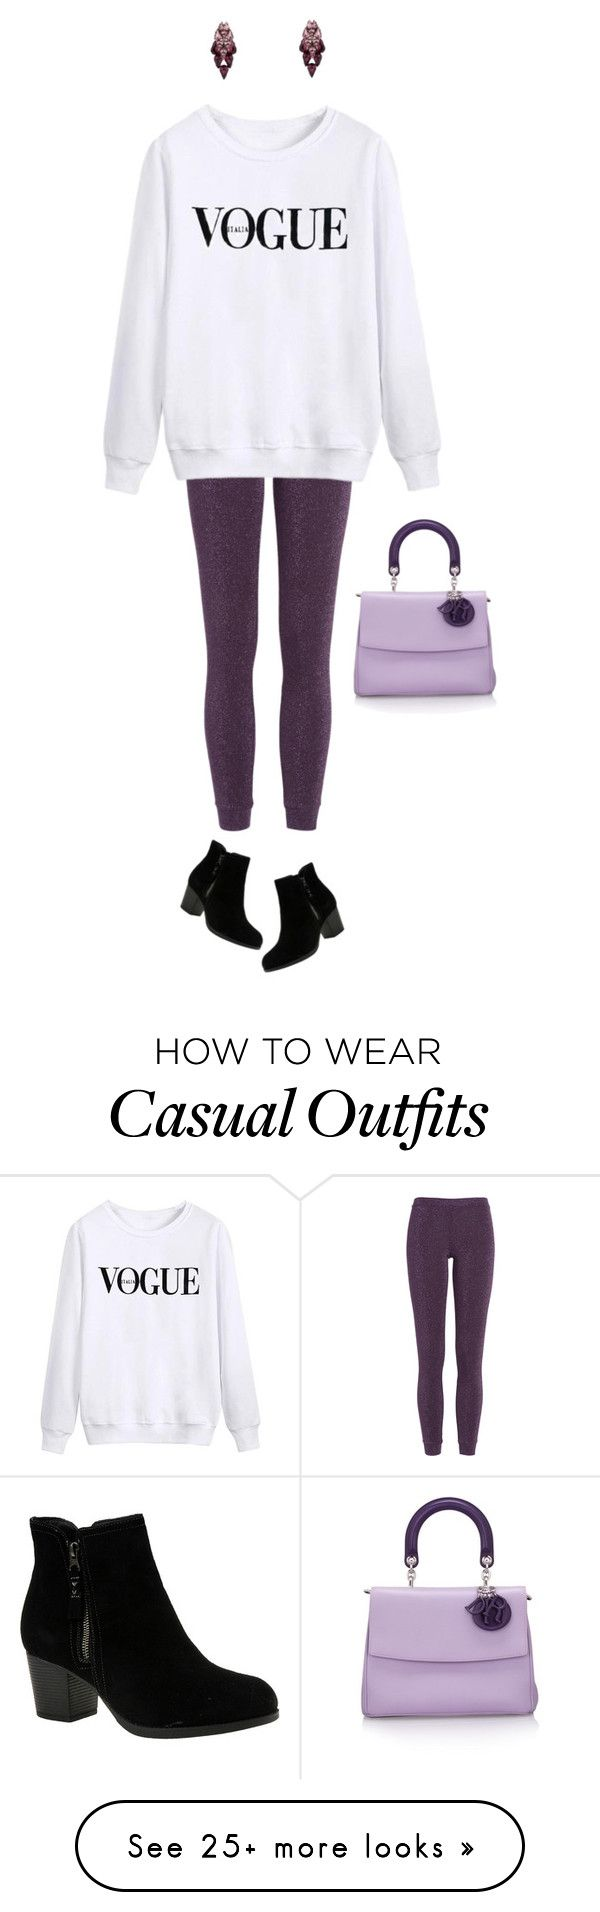 """""""Casual Vogue"""" by castles-inthesky on Polyvore featuring Missoni, Skechers, Ellen Conde and Christian Dior"""